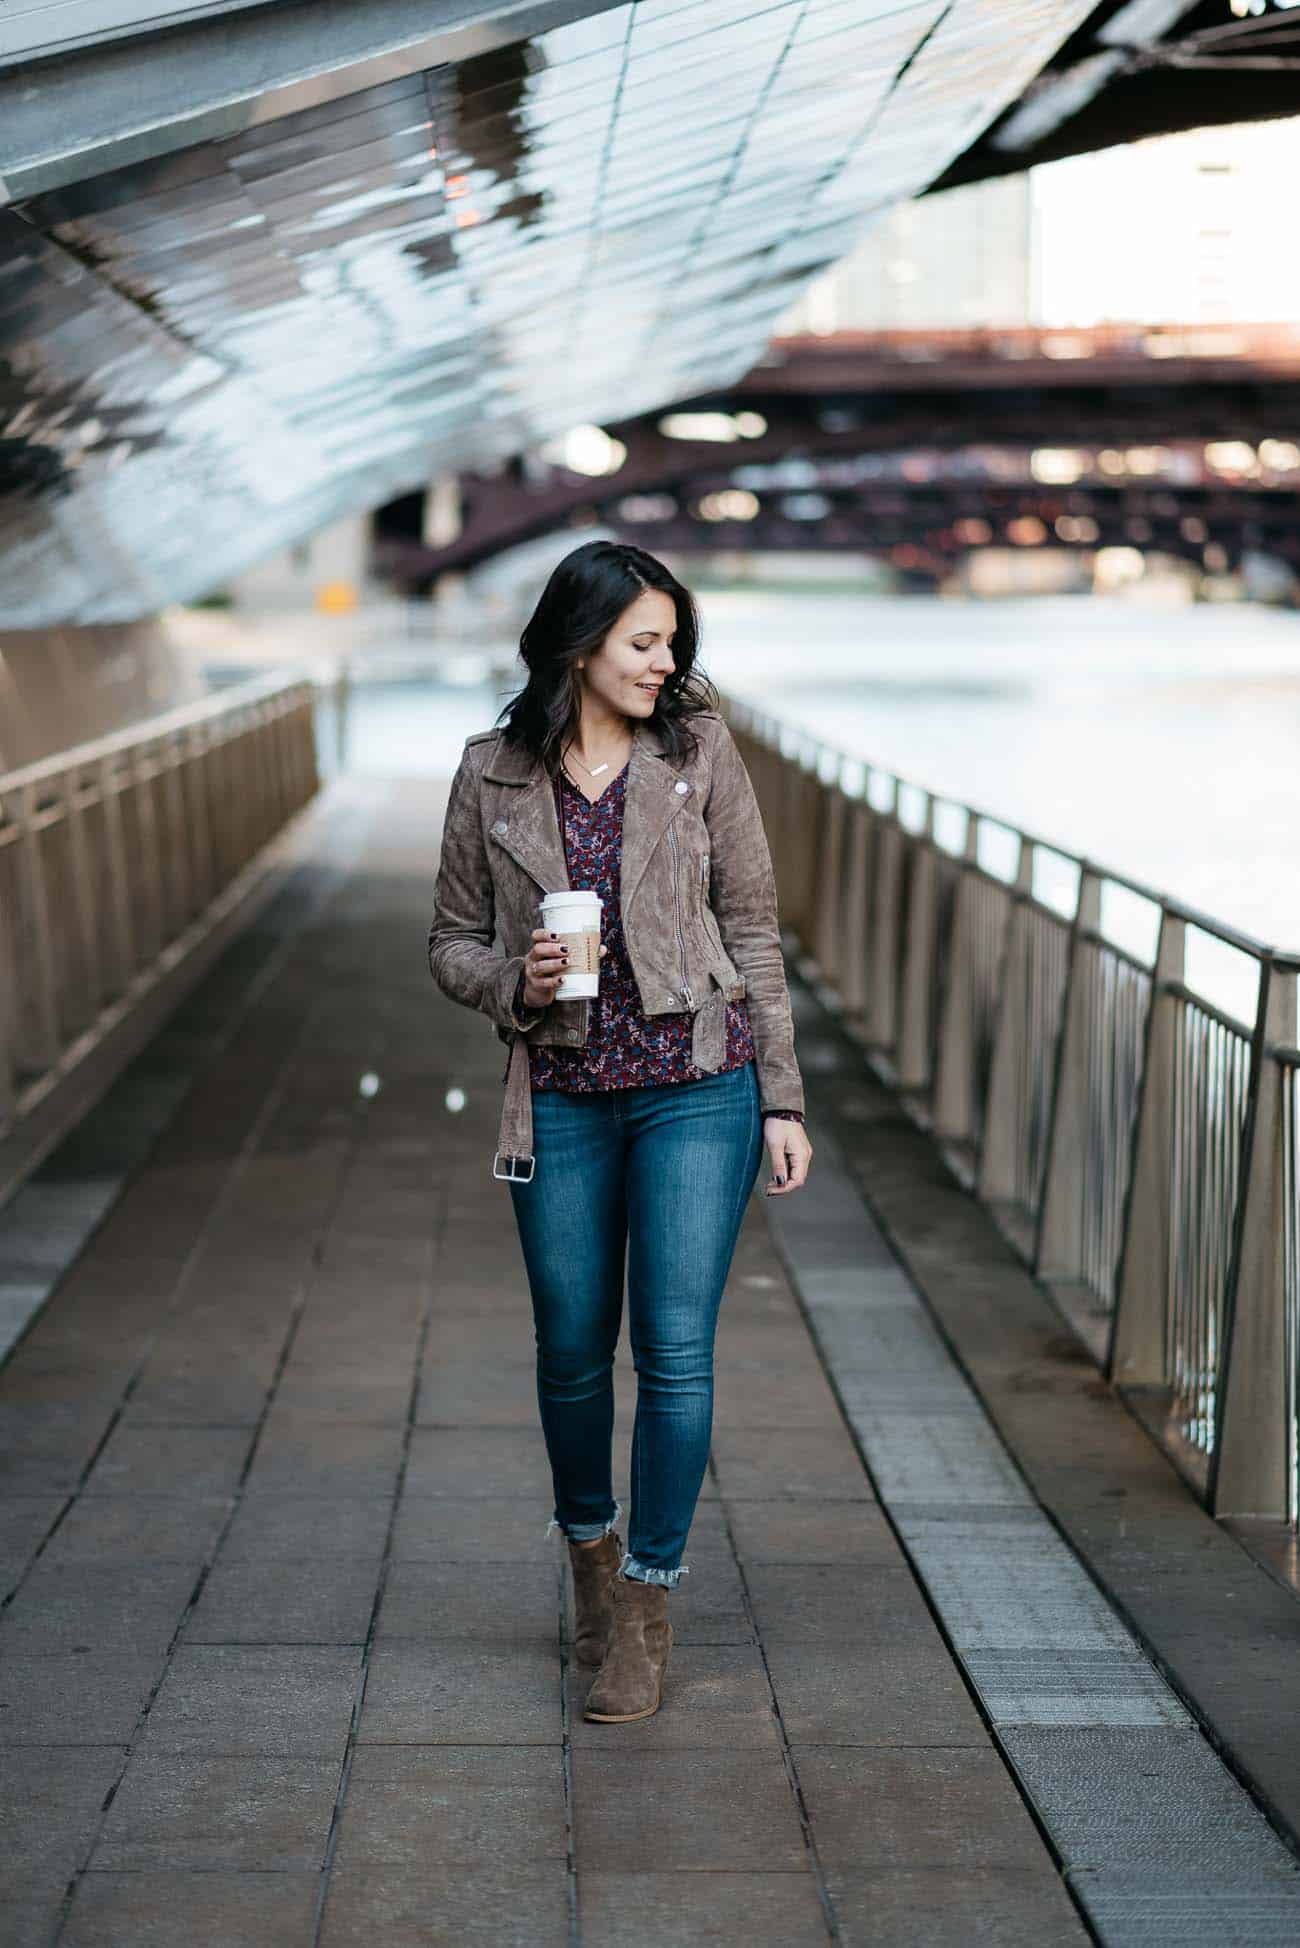 casual outfit ideas, suede moto jacket, jeans and booties, coffee, fall outfits - My Style Vita @mystylevita